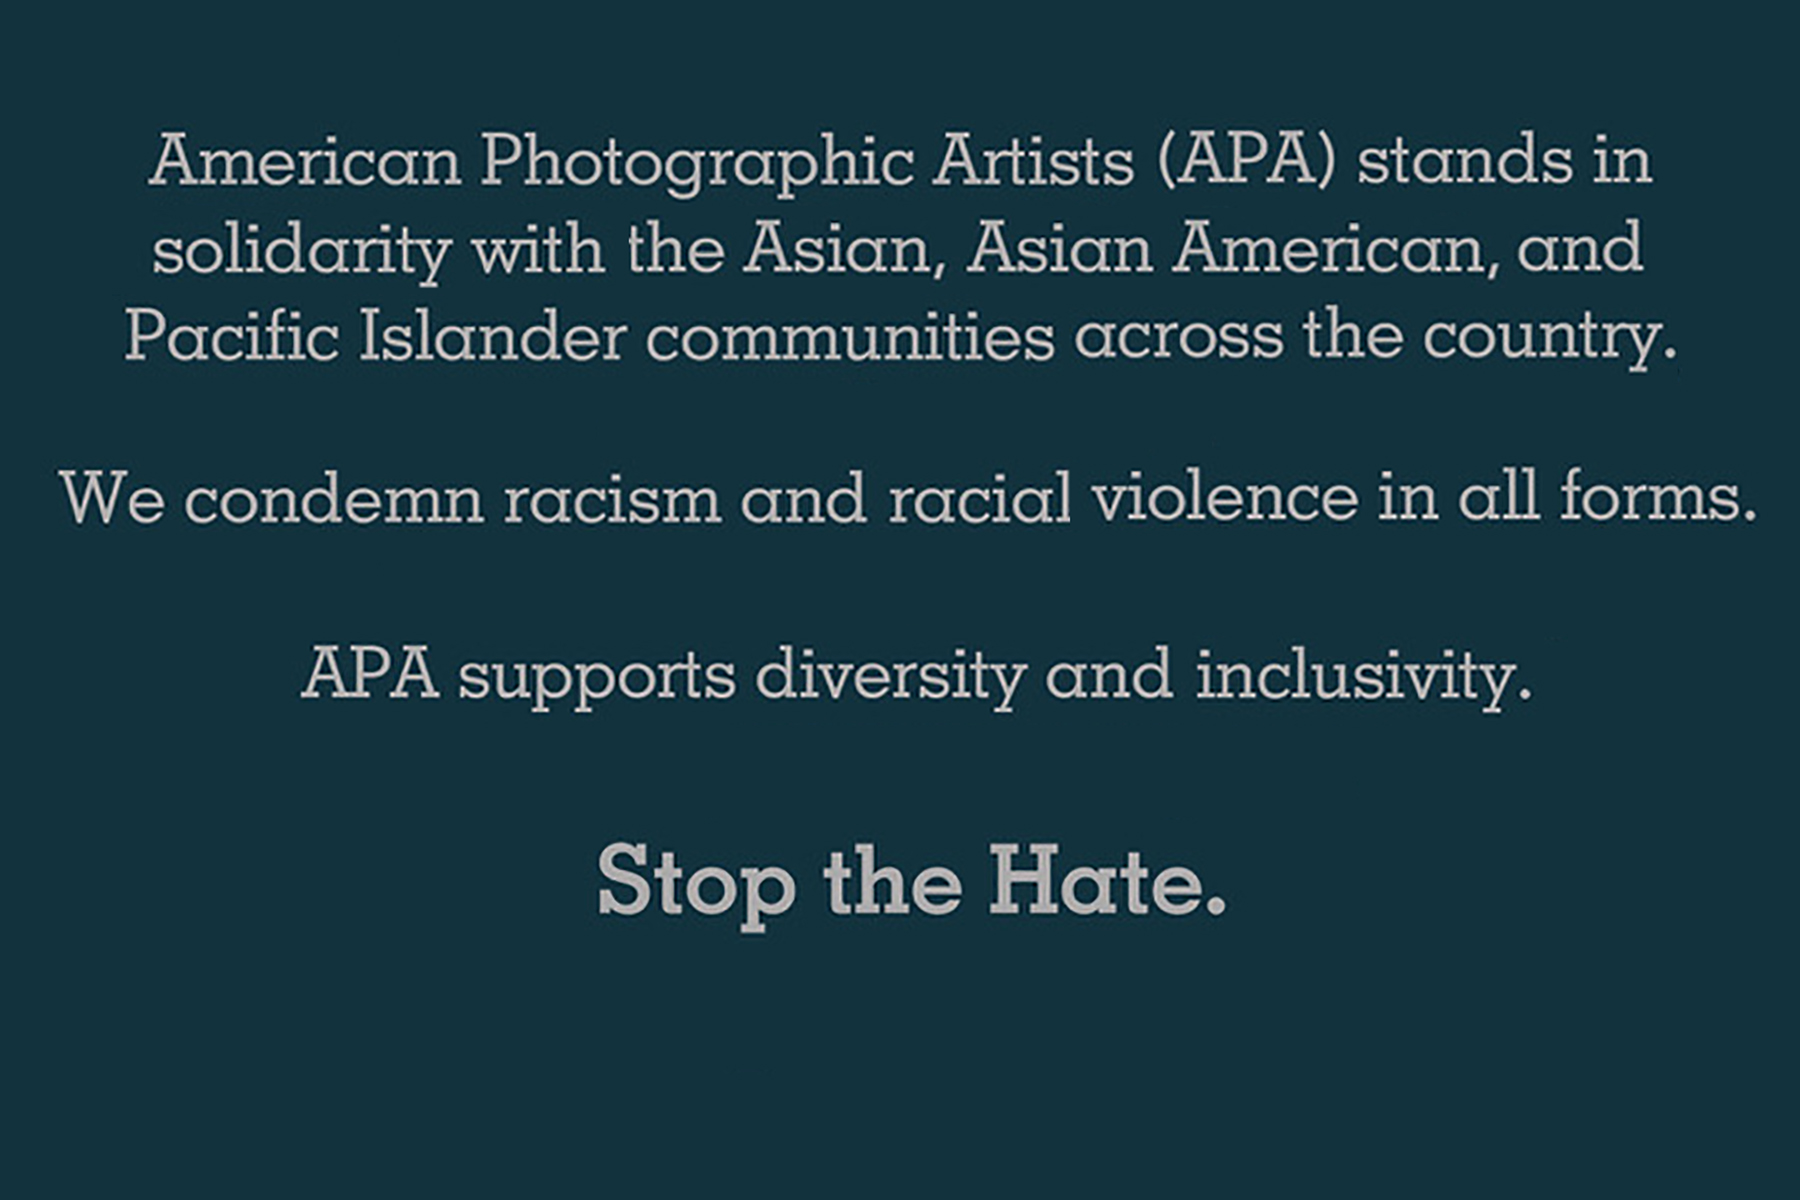 APA Statement in Support of Asian American and Pacific Islanders (AAPI)